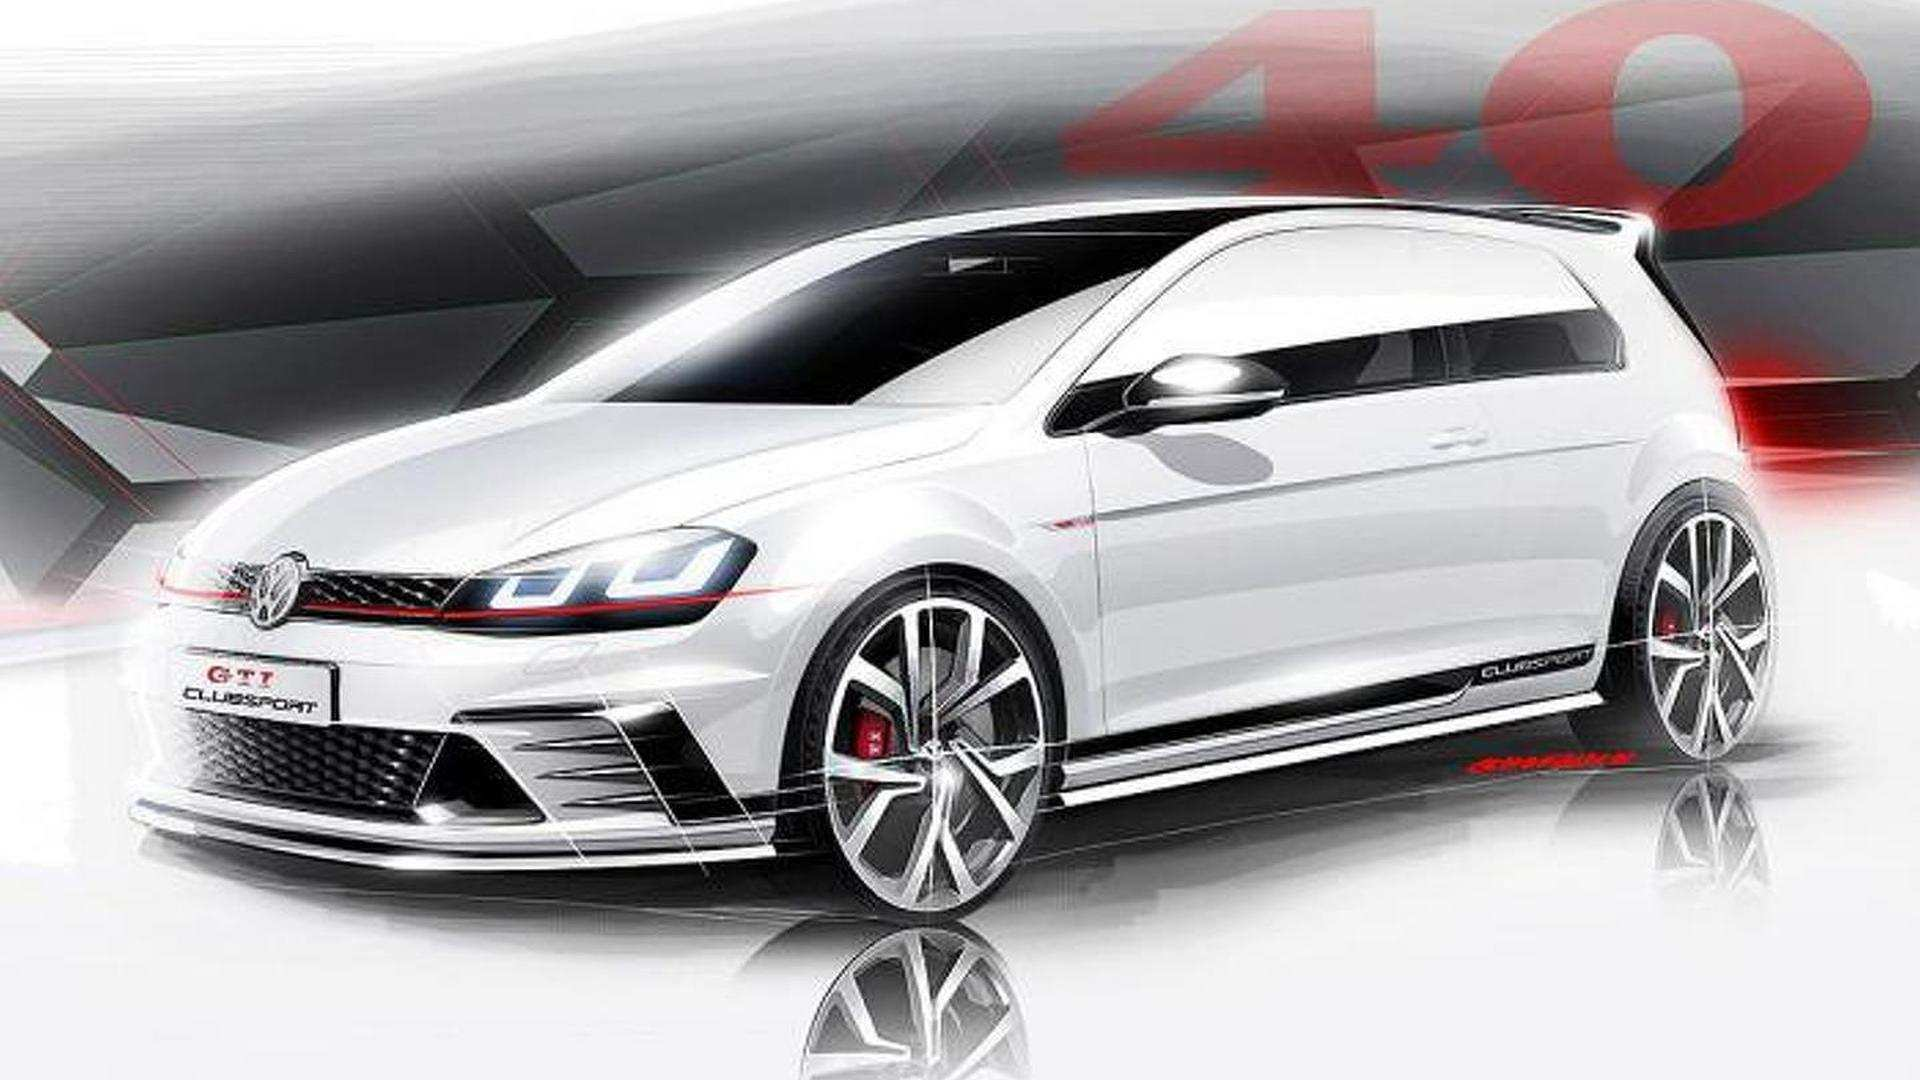 34 All New 2019 Volkswagen Golf R Redesign and Concept for 2019 Volkswagen Golf R